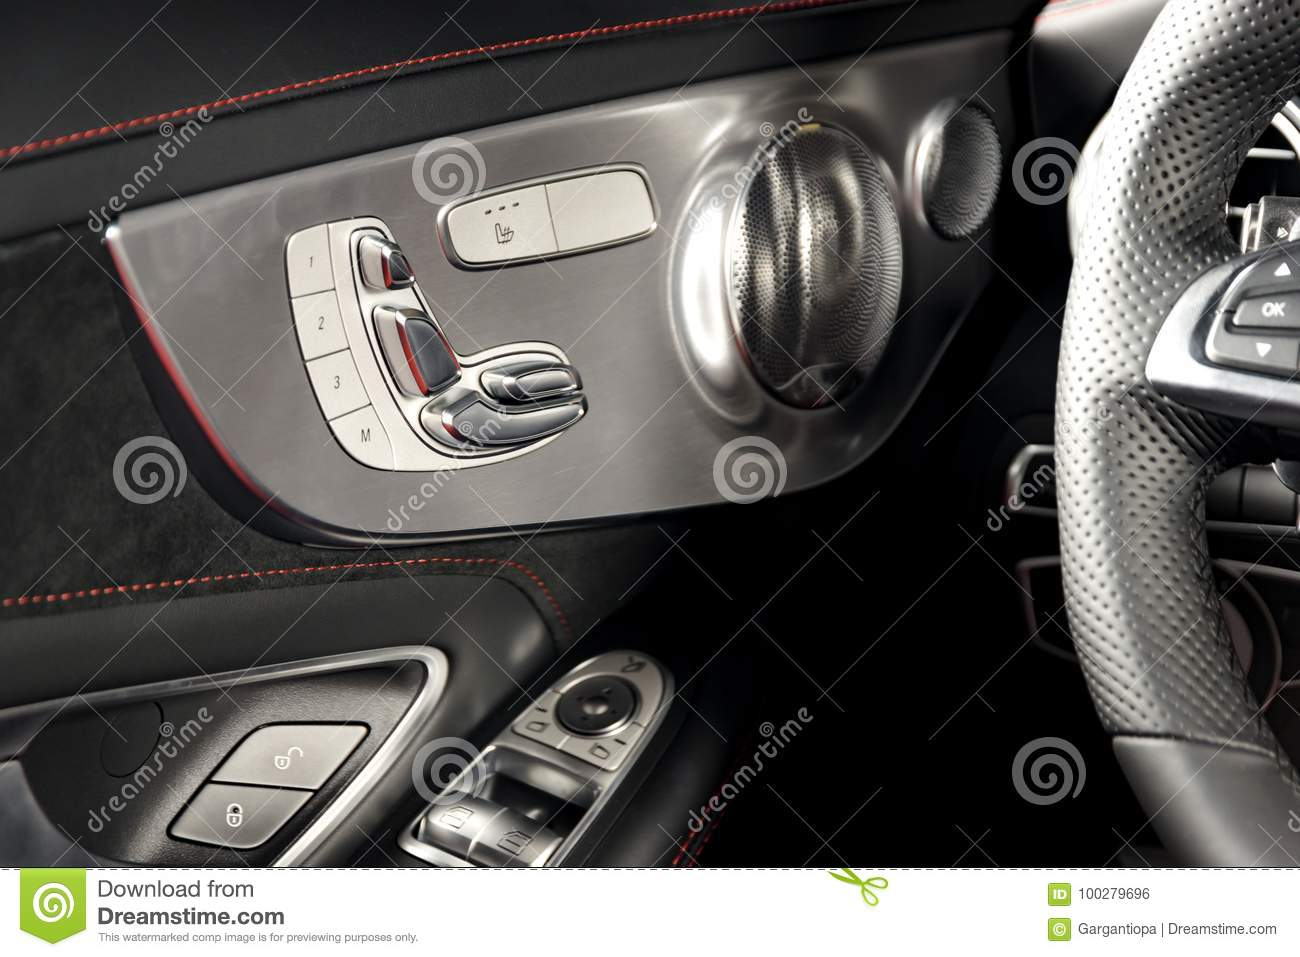 Door handle with Power seat control buttons of a luxury passenger car